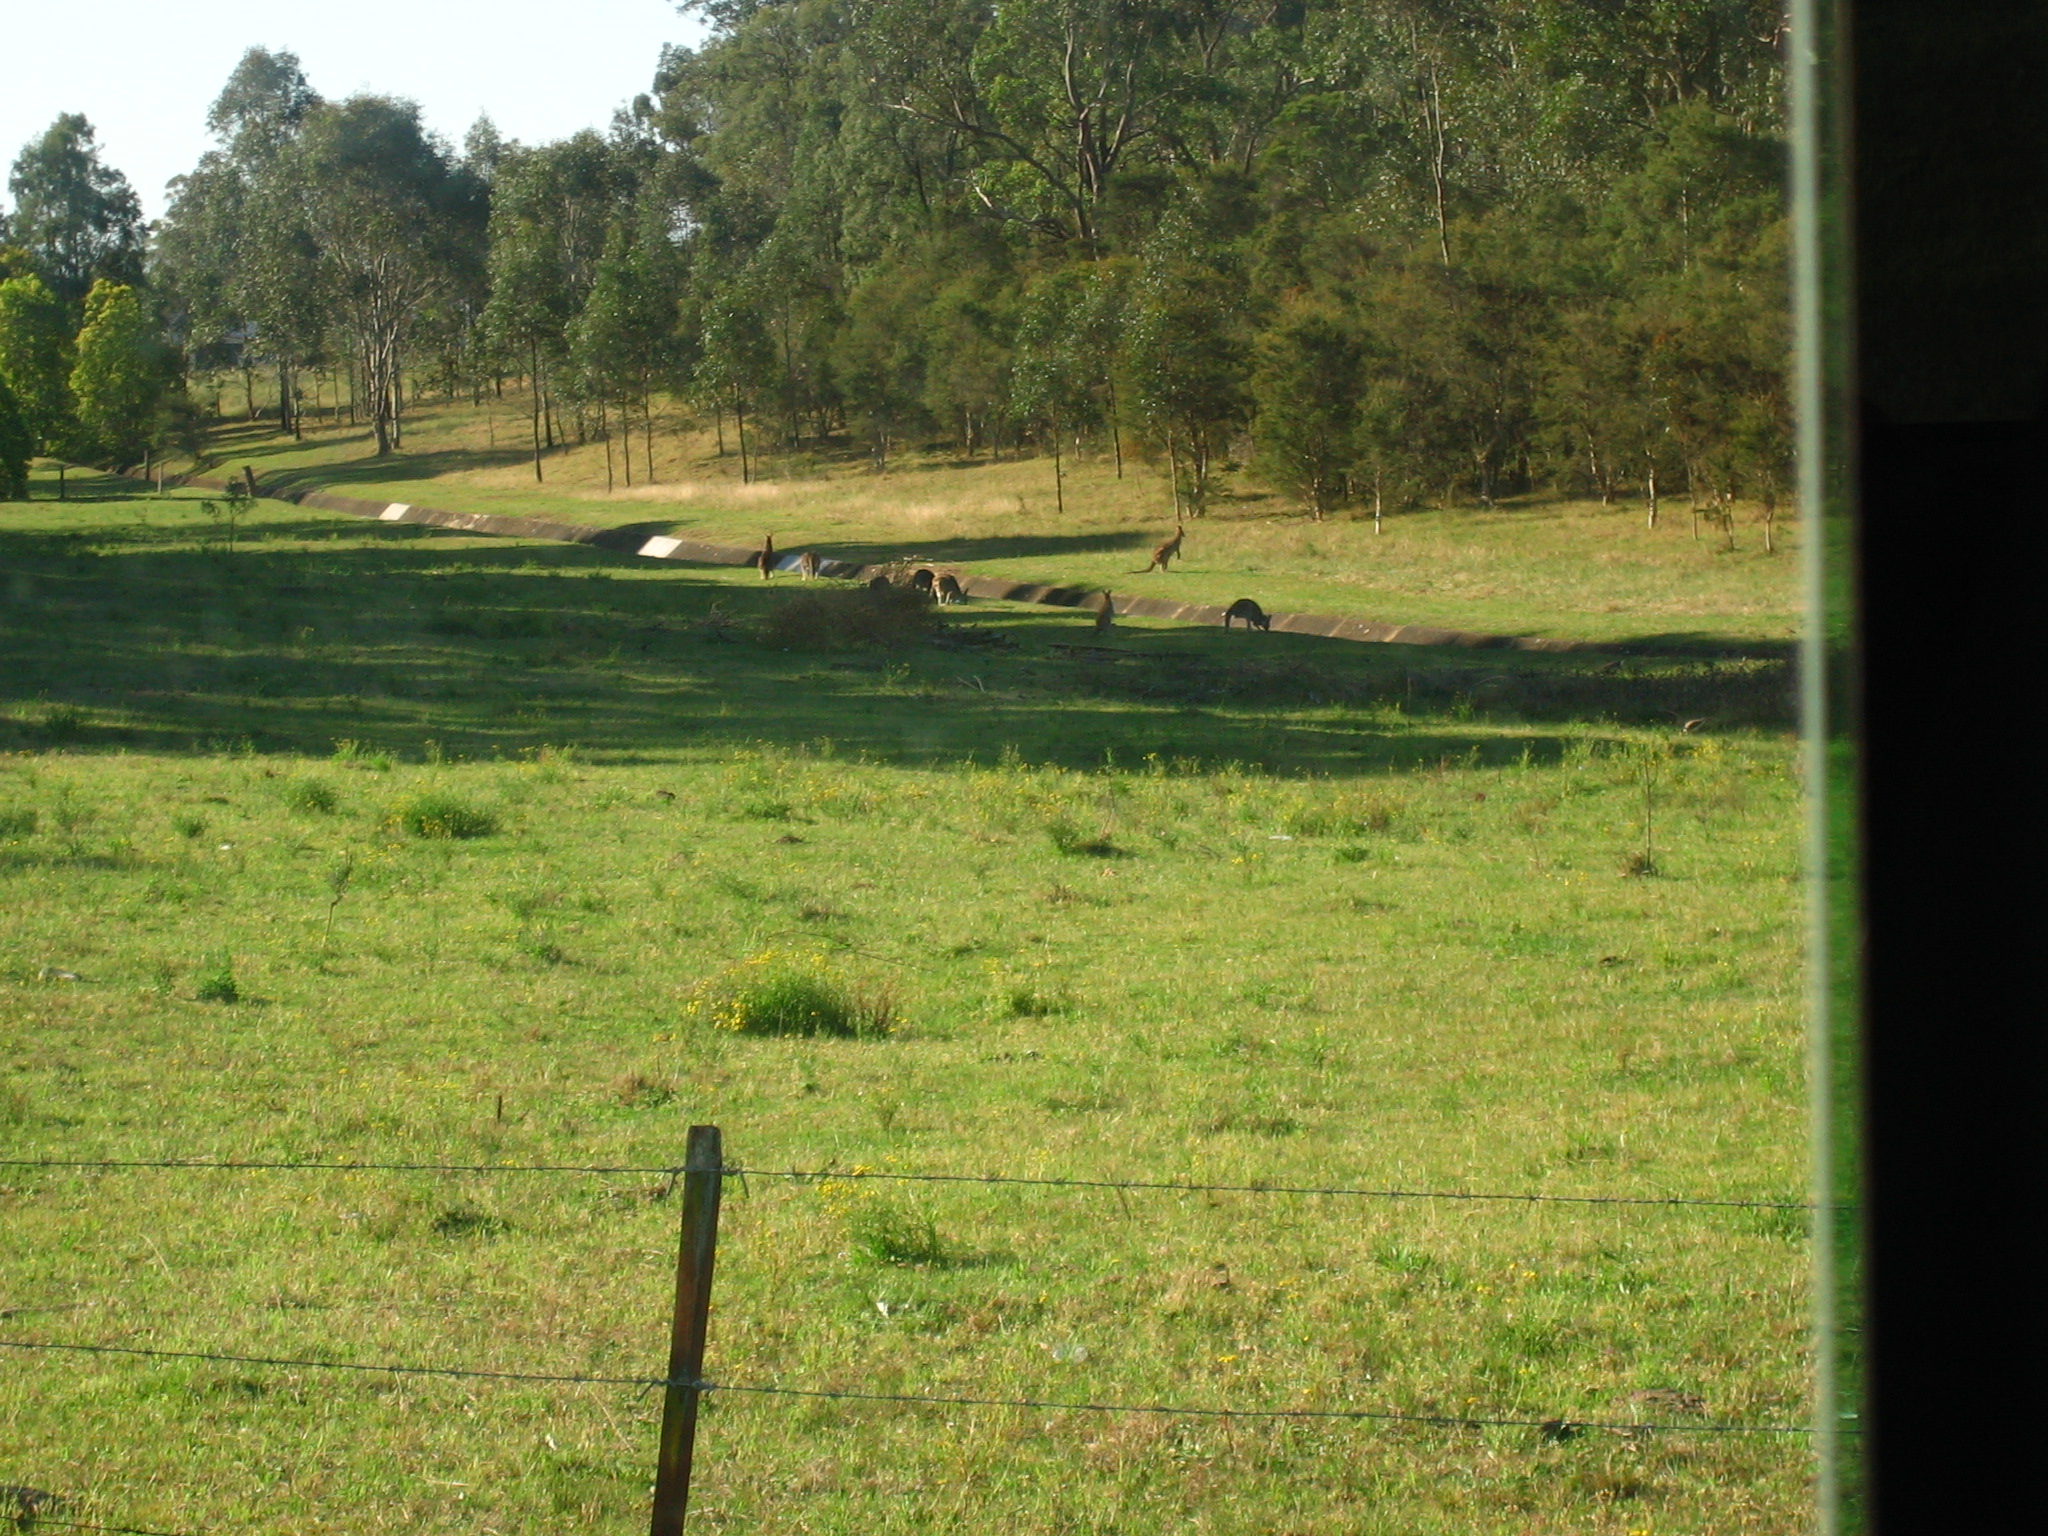 Sydney - Kangaroos by the road